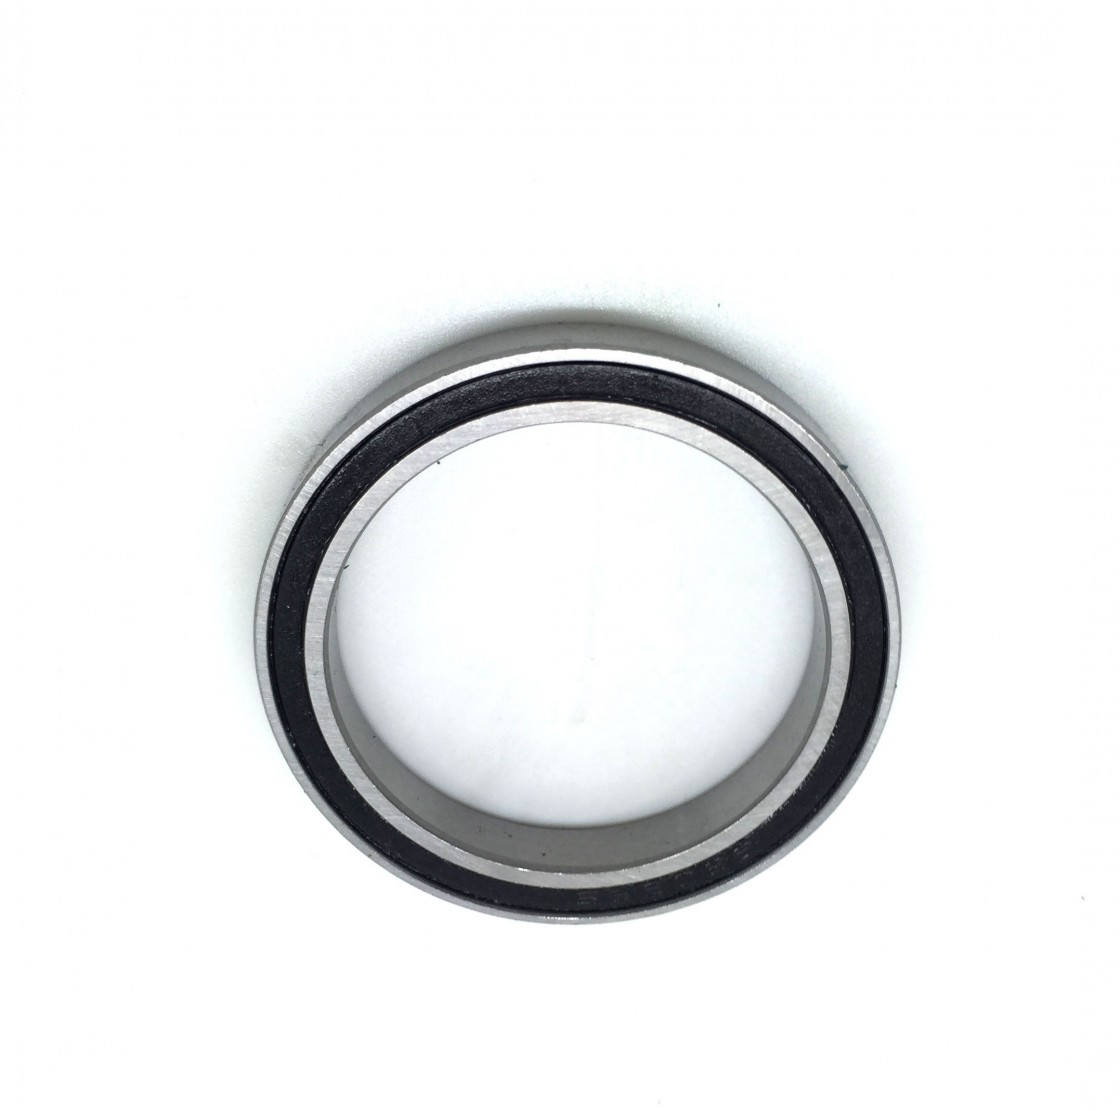 motor bearings 6206zz 6206 hr6206 2rs size 30x62x16 mm 6206du 6206v64 deep groove ball bearing 6206